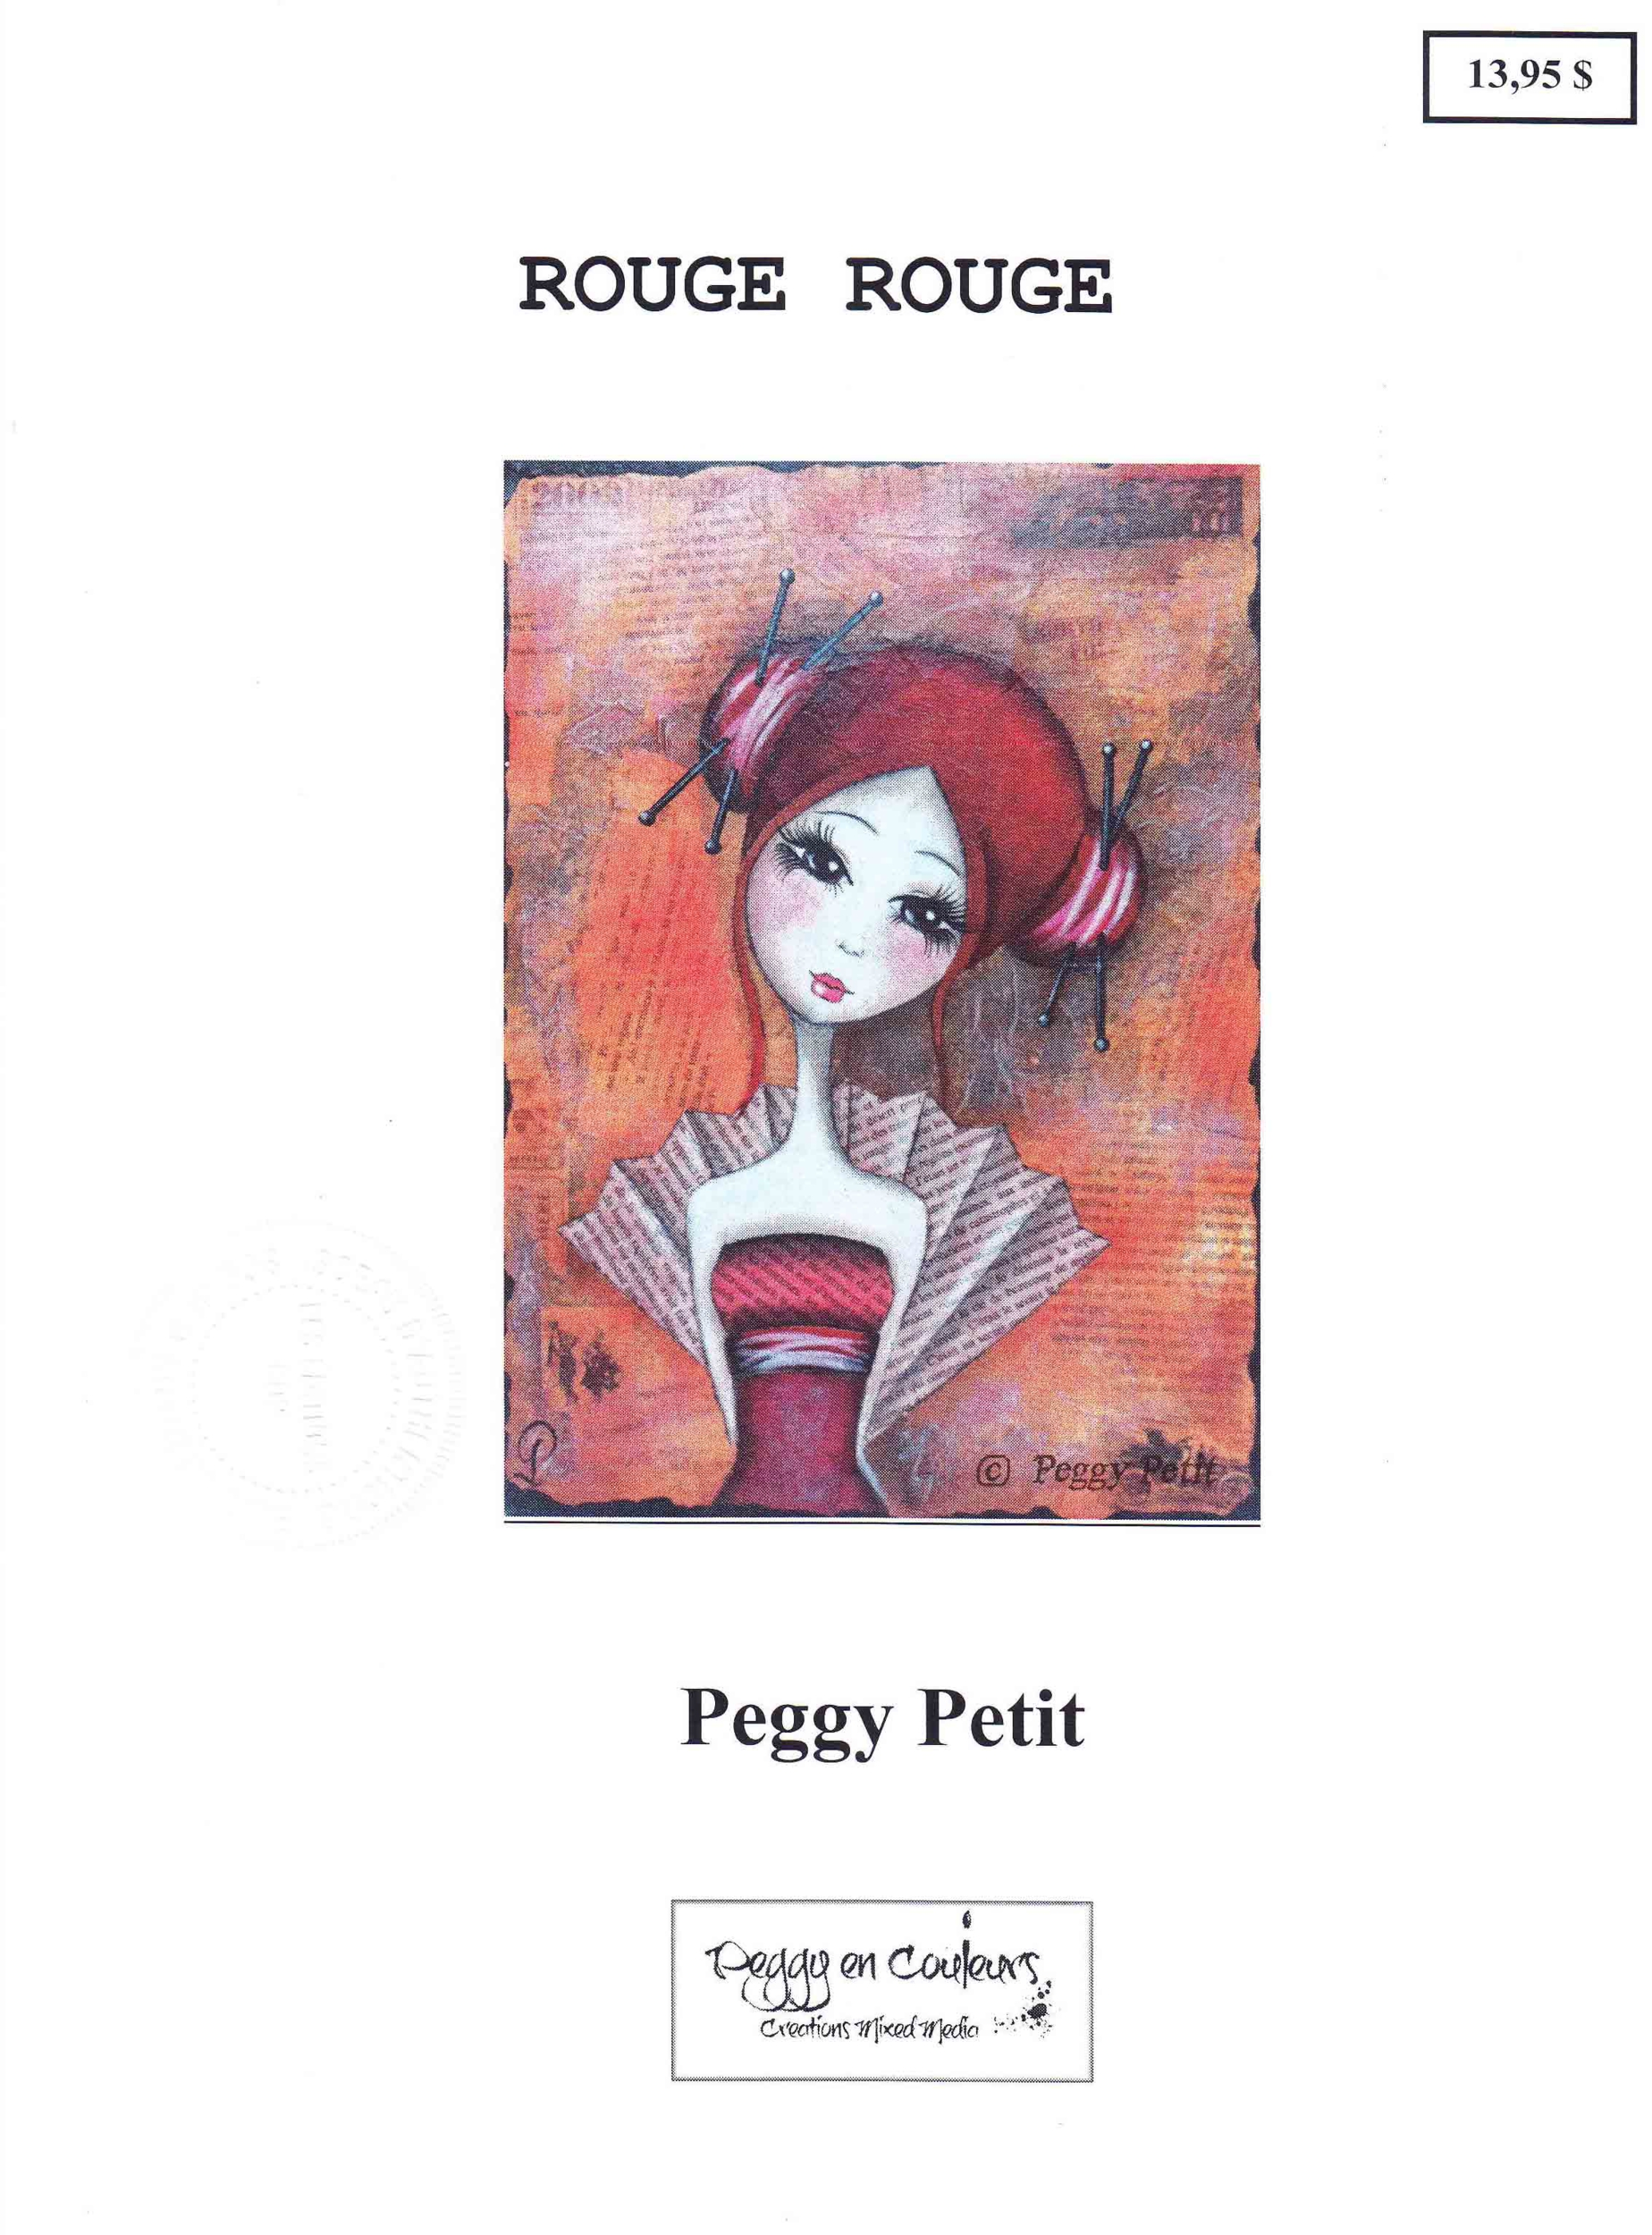 Rouge rouge - Peggy Petit